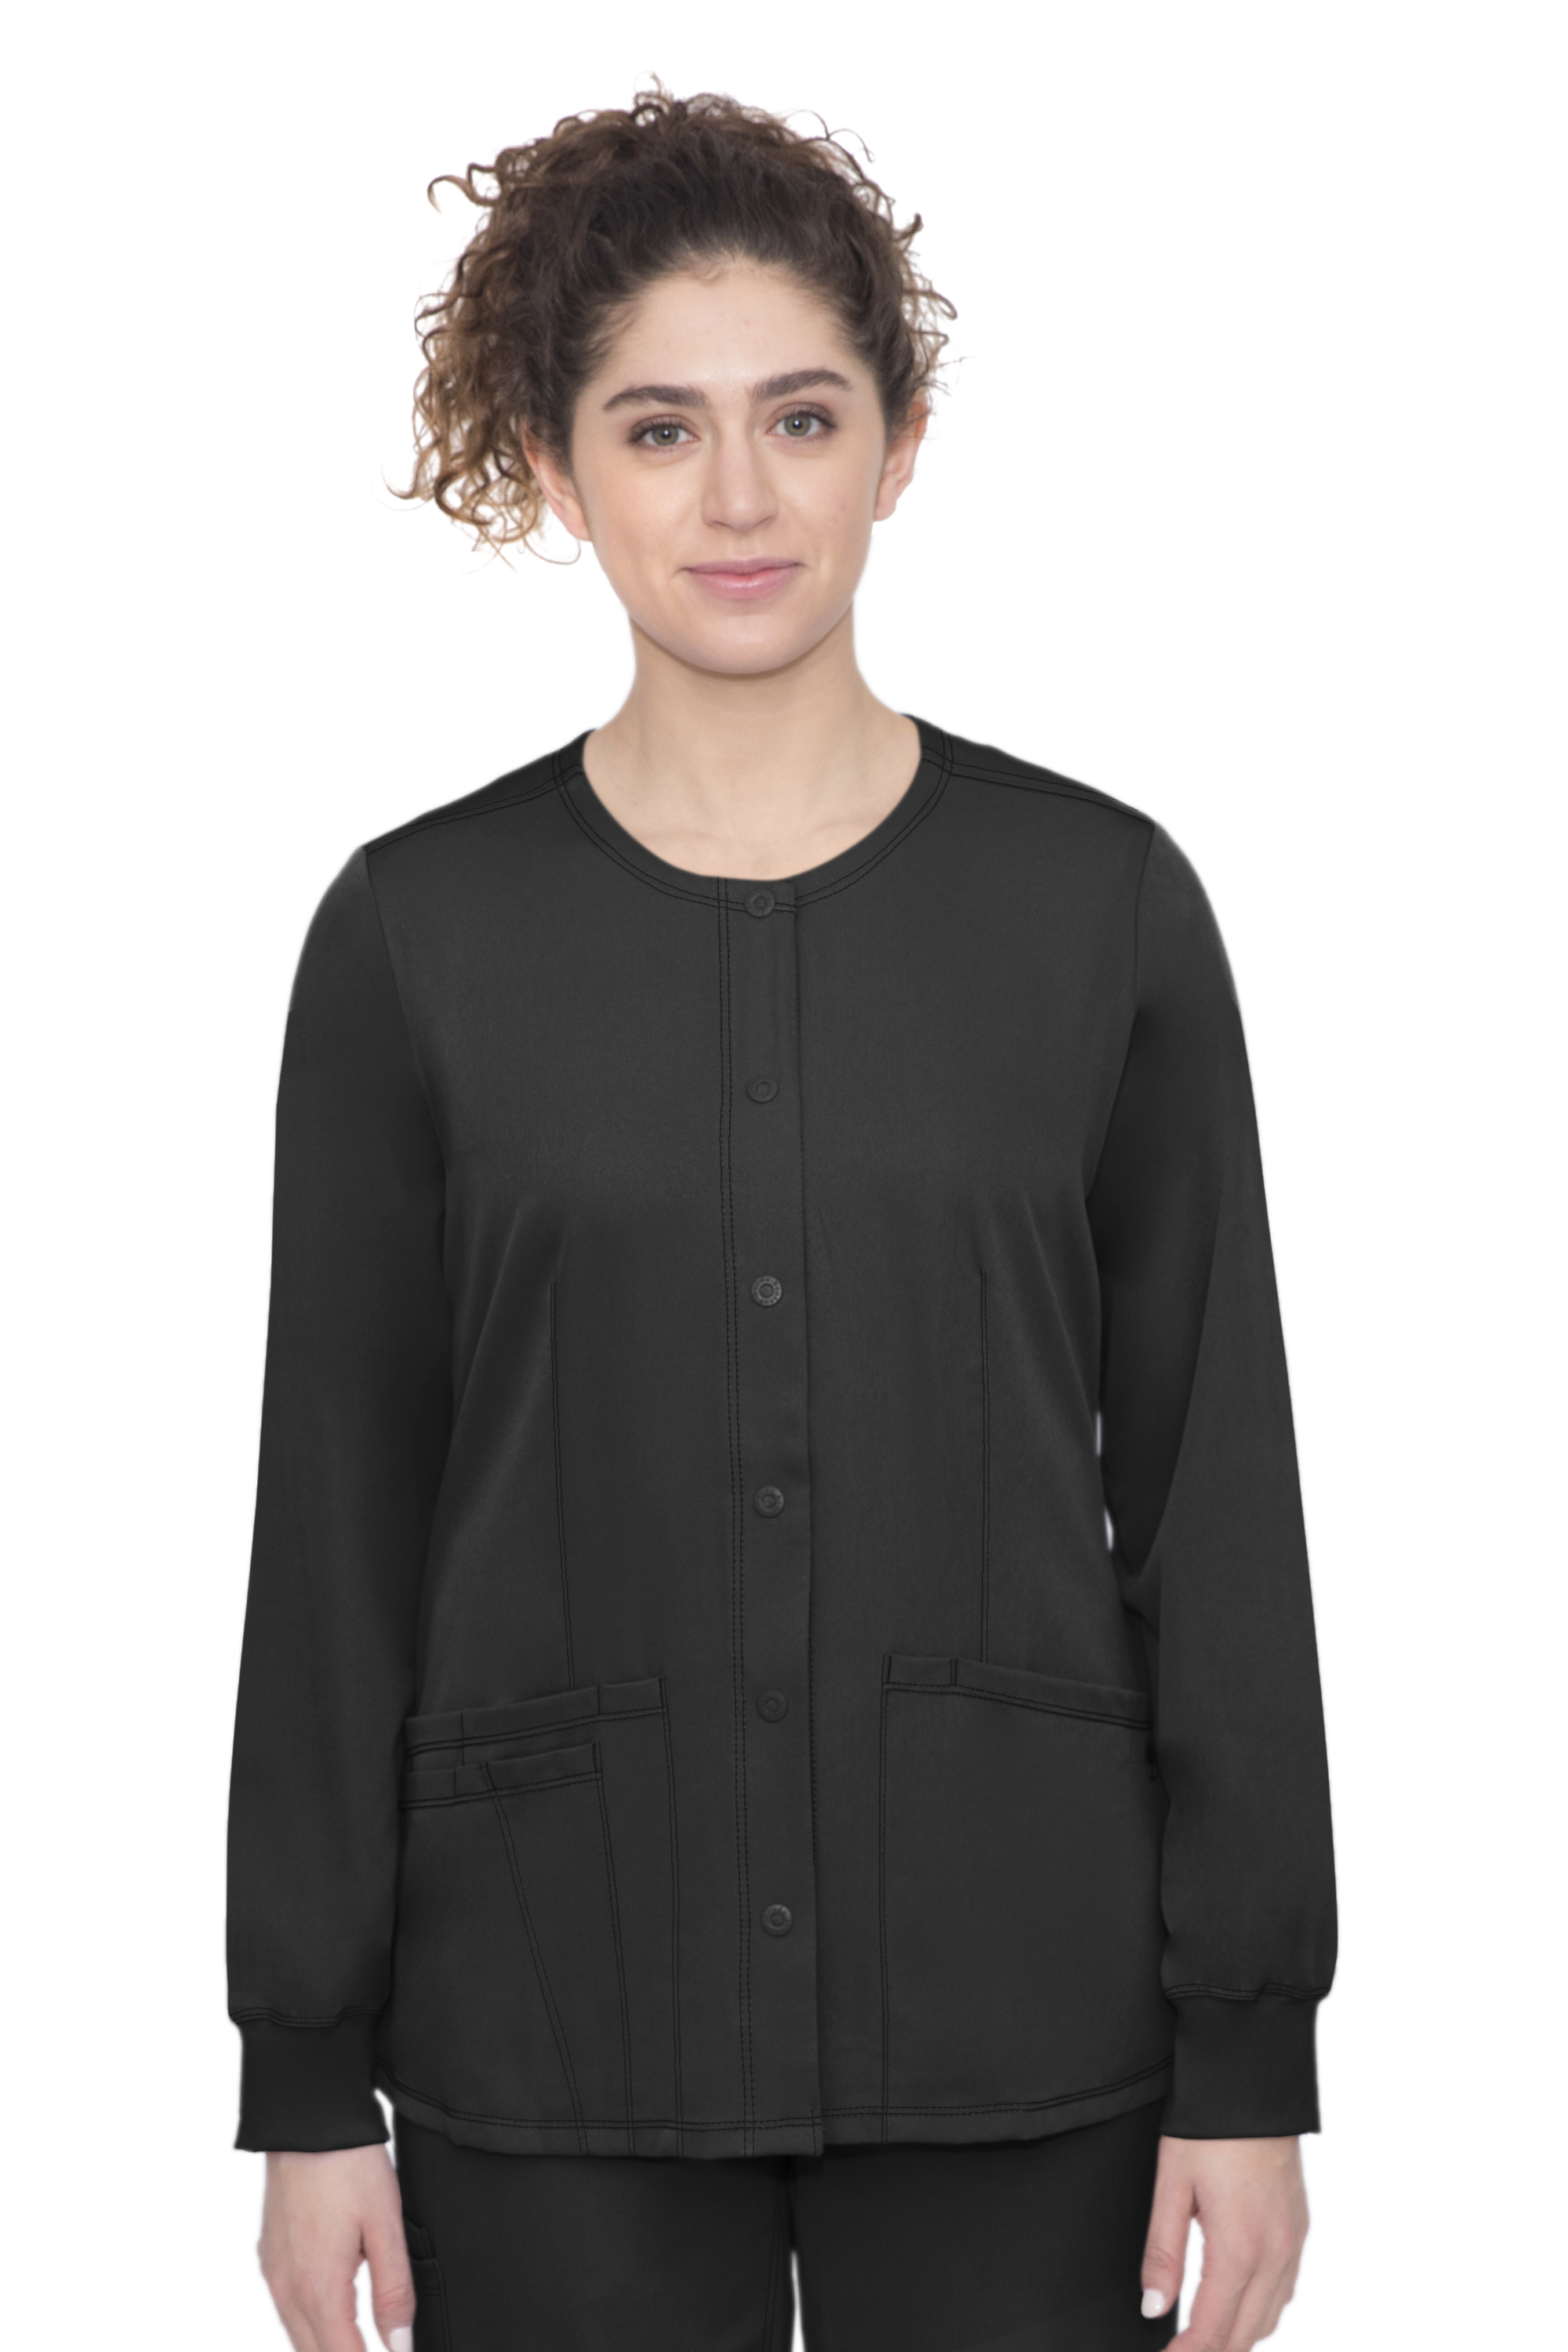 Megan Jacket-Round Neck Snap Button Front Jacket With 4 Pockets & 1 Media Pocket-Hh Works